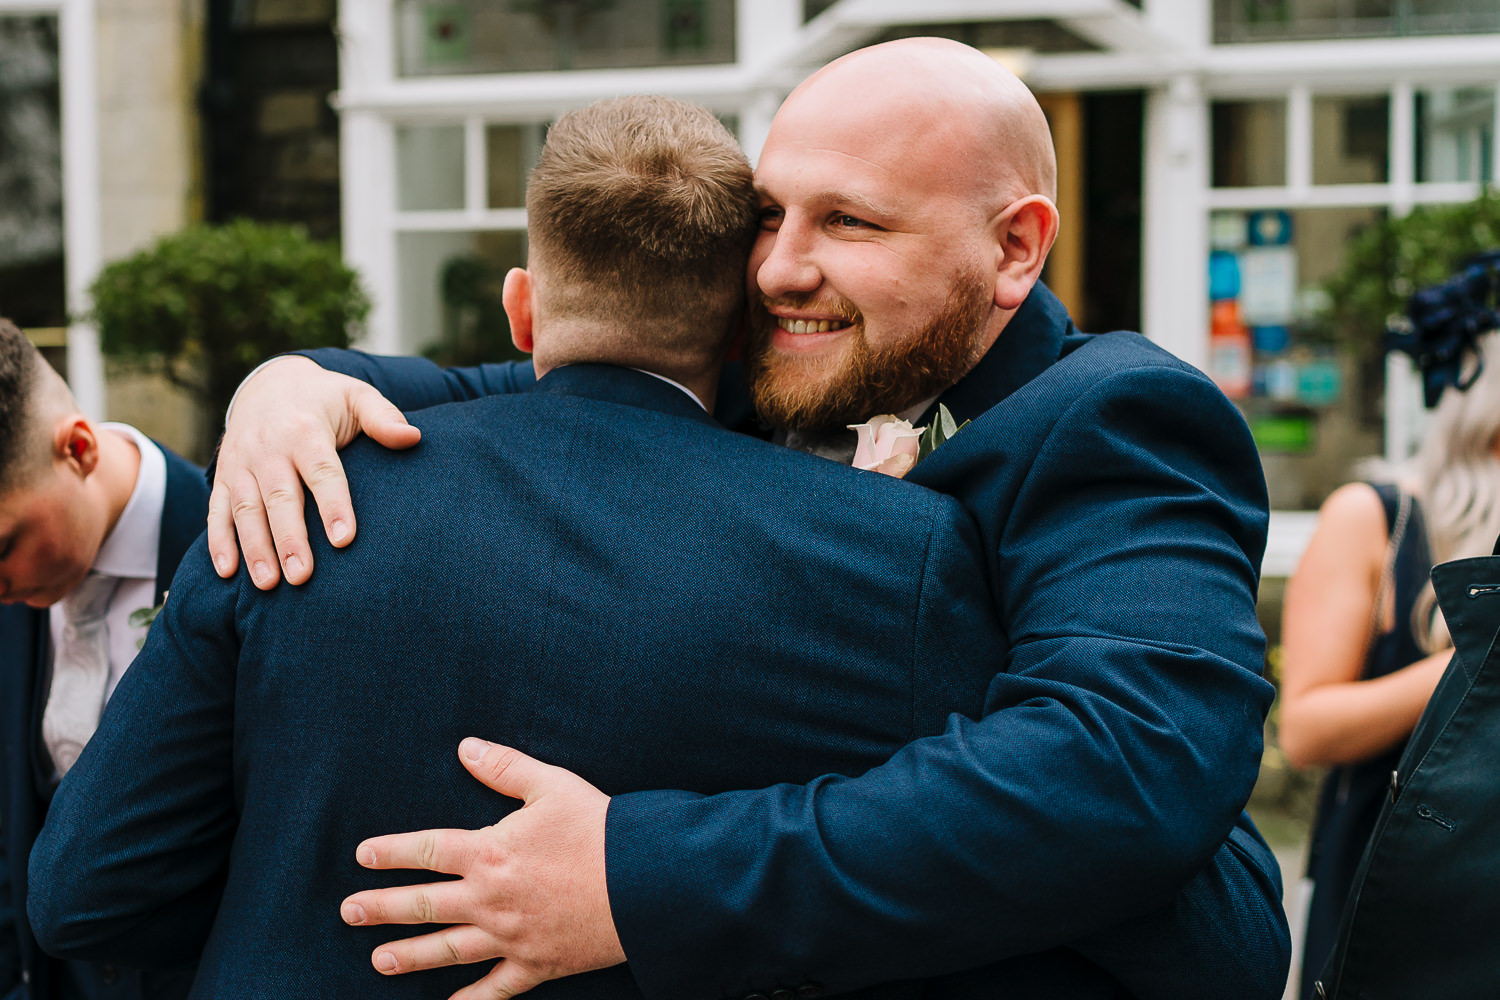 Groom being hugged by an usher